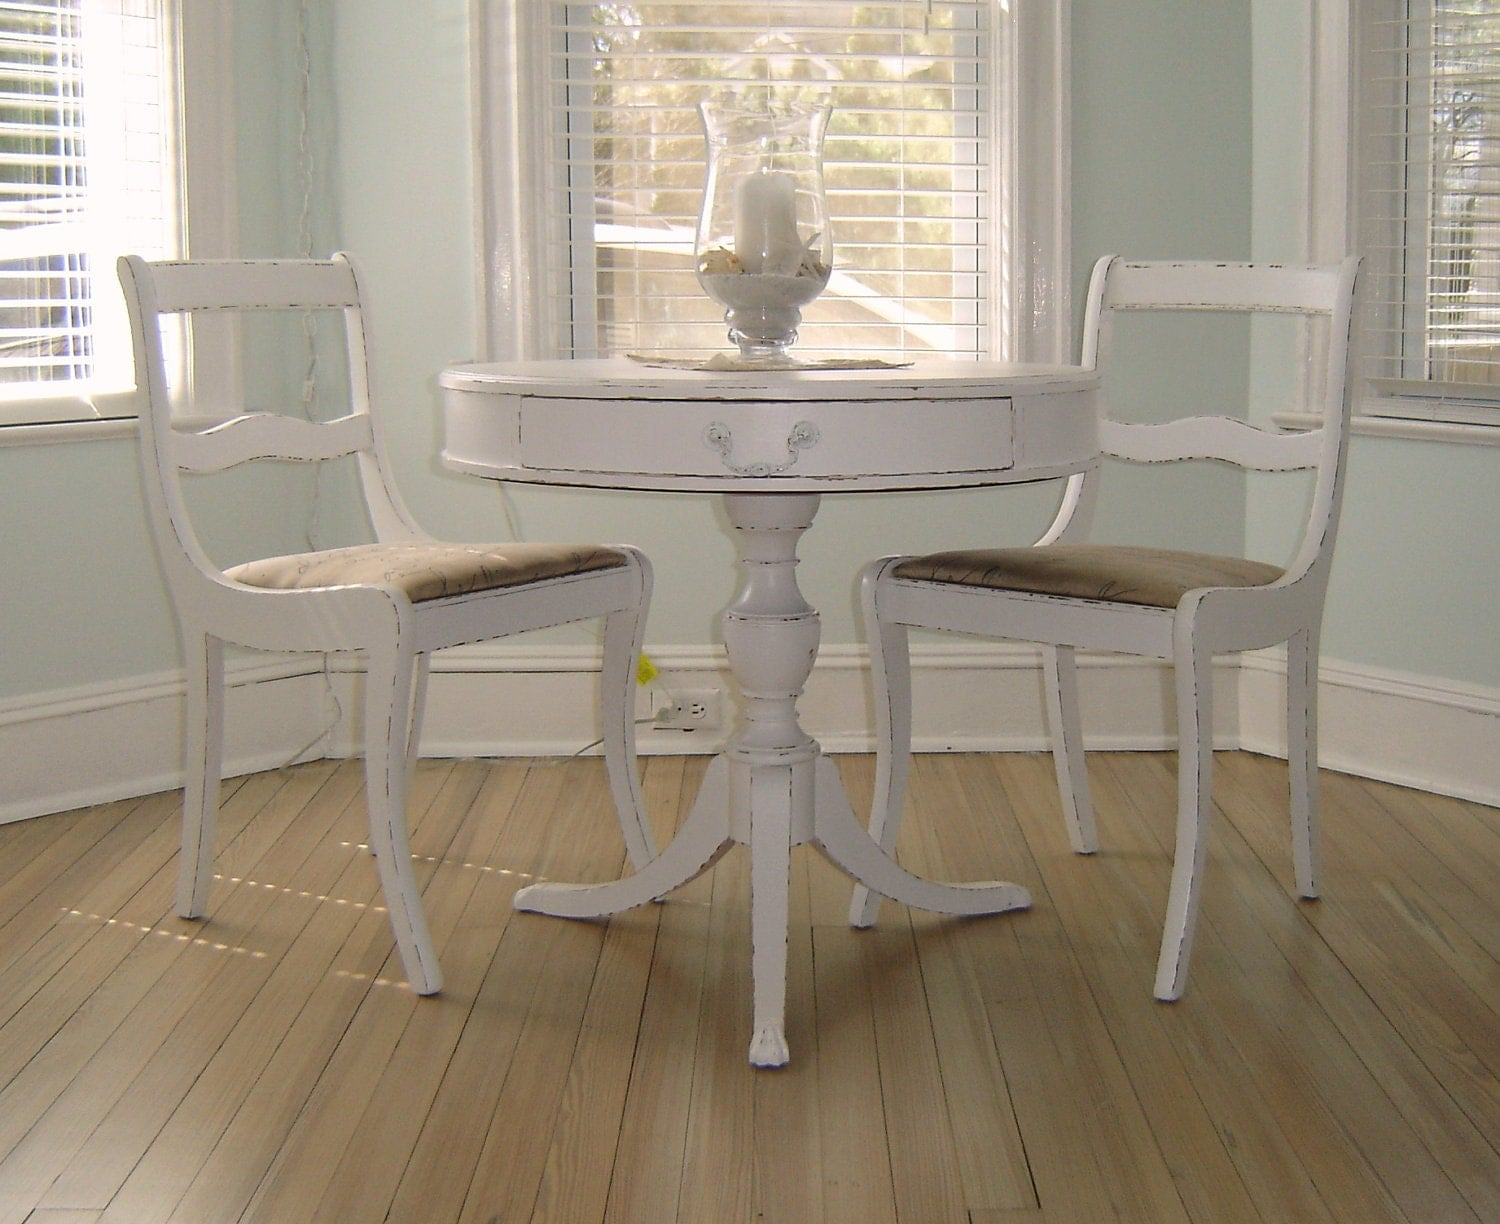 French Shabby Chic White Bistro Set 2 Chairs & Table